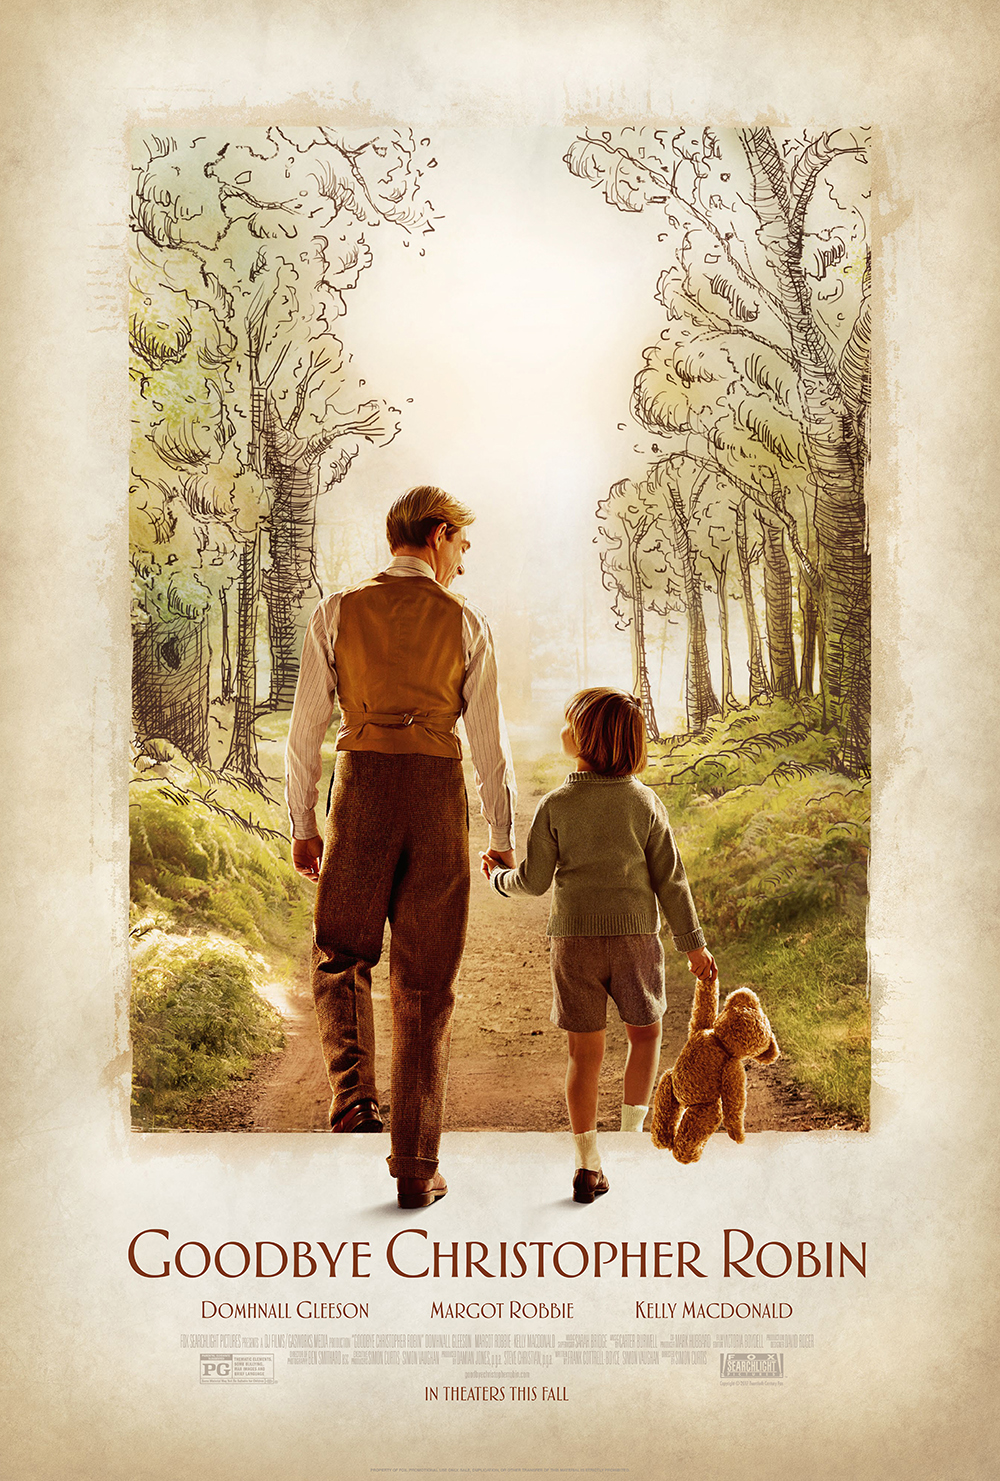 Movie sneak peek: Goodbye Christopher Robin